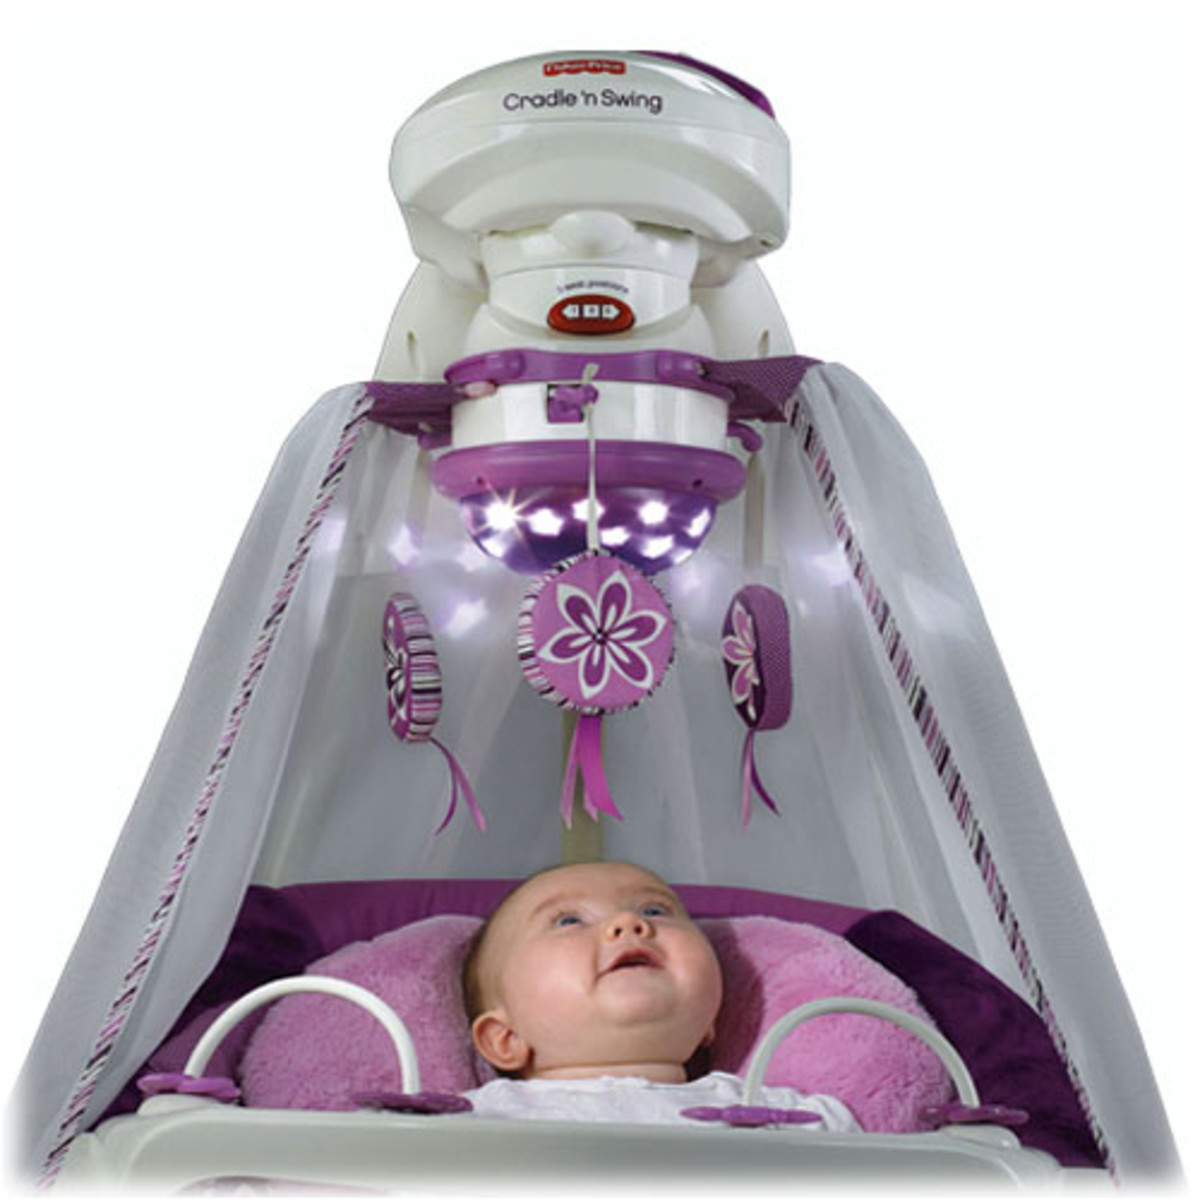 V3667-sugar-plum-starlight-cradle-n-swing-d-4